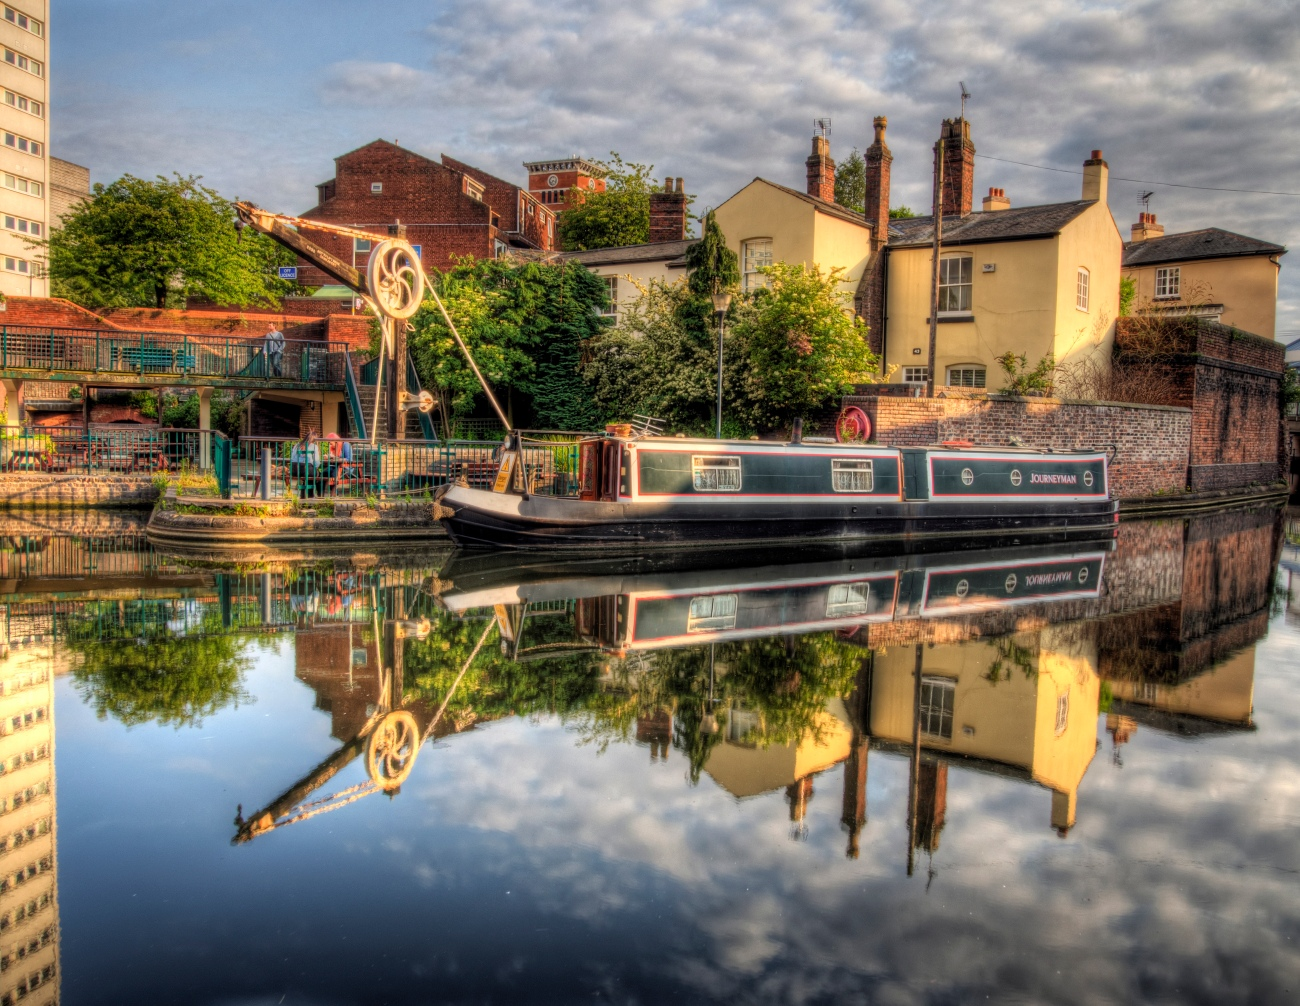 A narrowboat on the canal in Birmingham